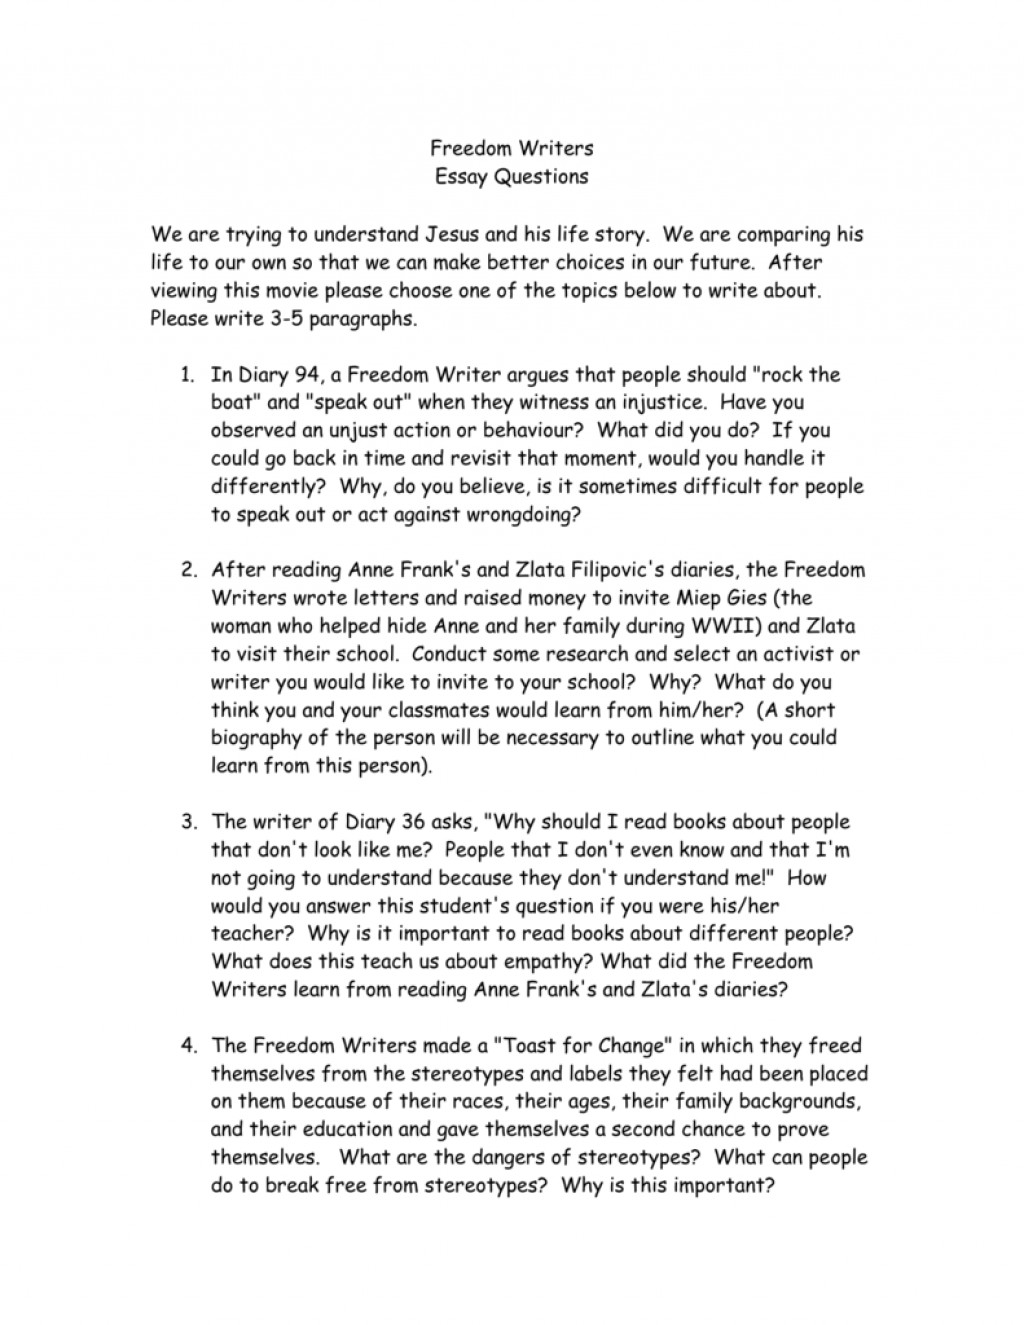 002 Essay Example About Freedom Writers 008984092 1 Striking Questions For Movie Narrative Large